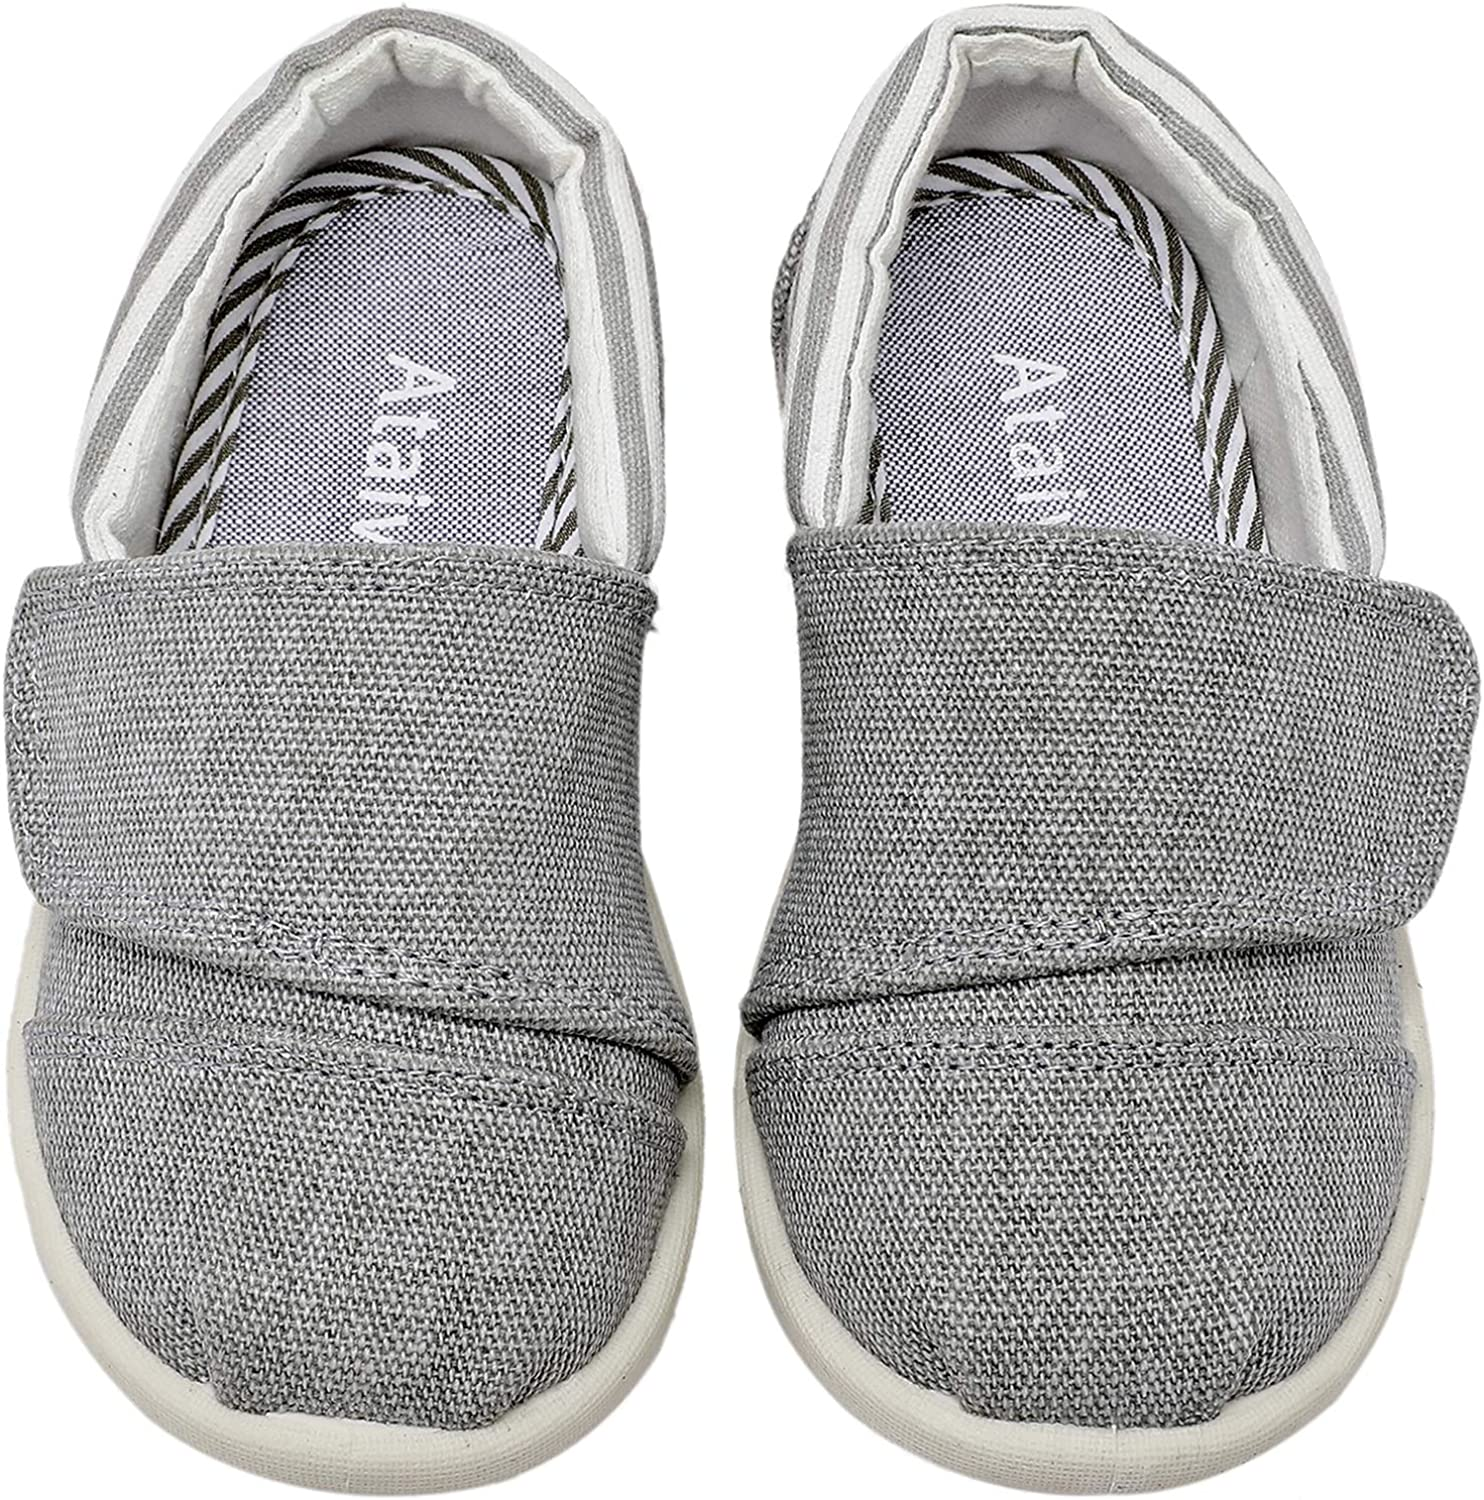 Ataiwee Baby Boys Sneaker Shoes 6//12//18Months//Infant//Toddler Slip on Canvas Comfy Kids Non-Slip Hard Bottom First Walkers Tennis Shoes.